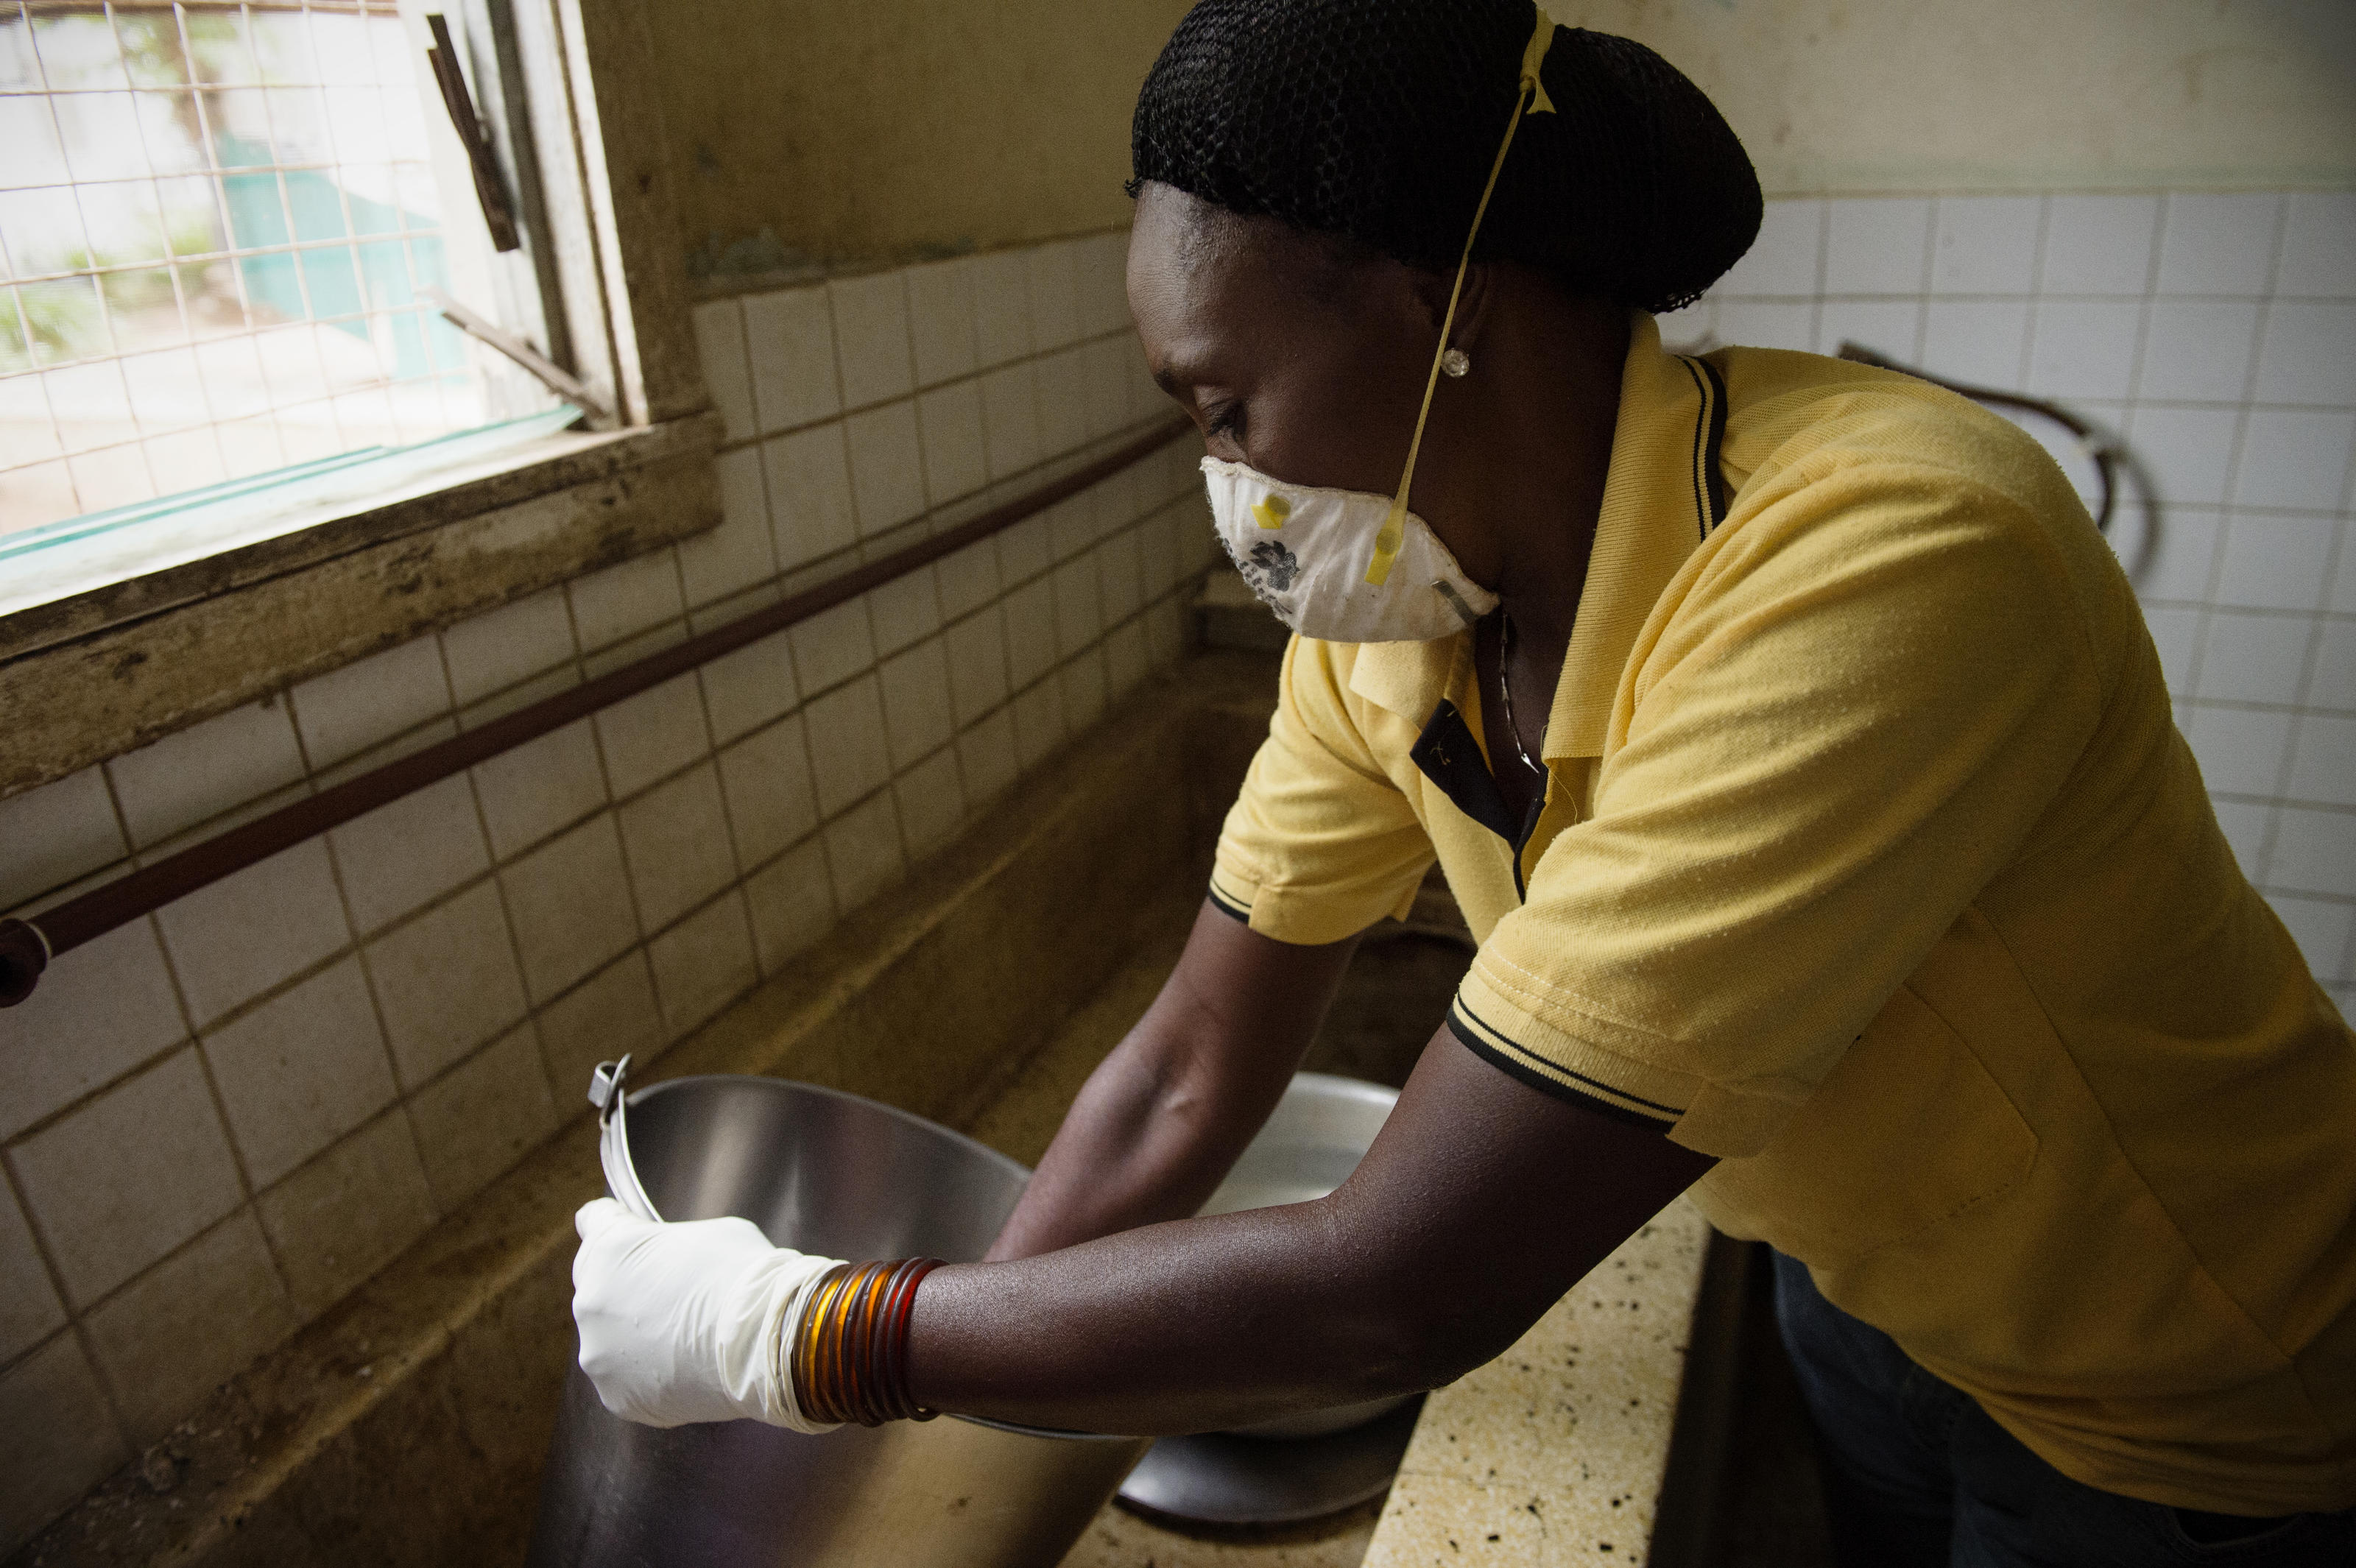 Cleaner Margaret Edson washes buckets in the sluice room at Kiomboi Hospital, Iramba, Tanzania, December 2015.